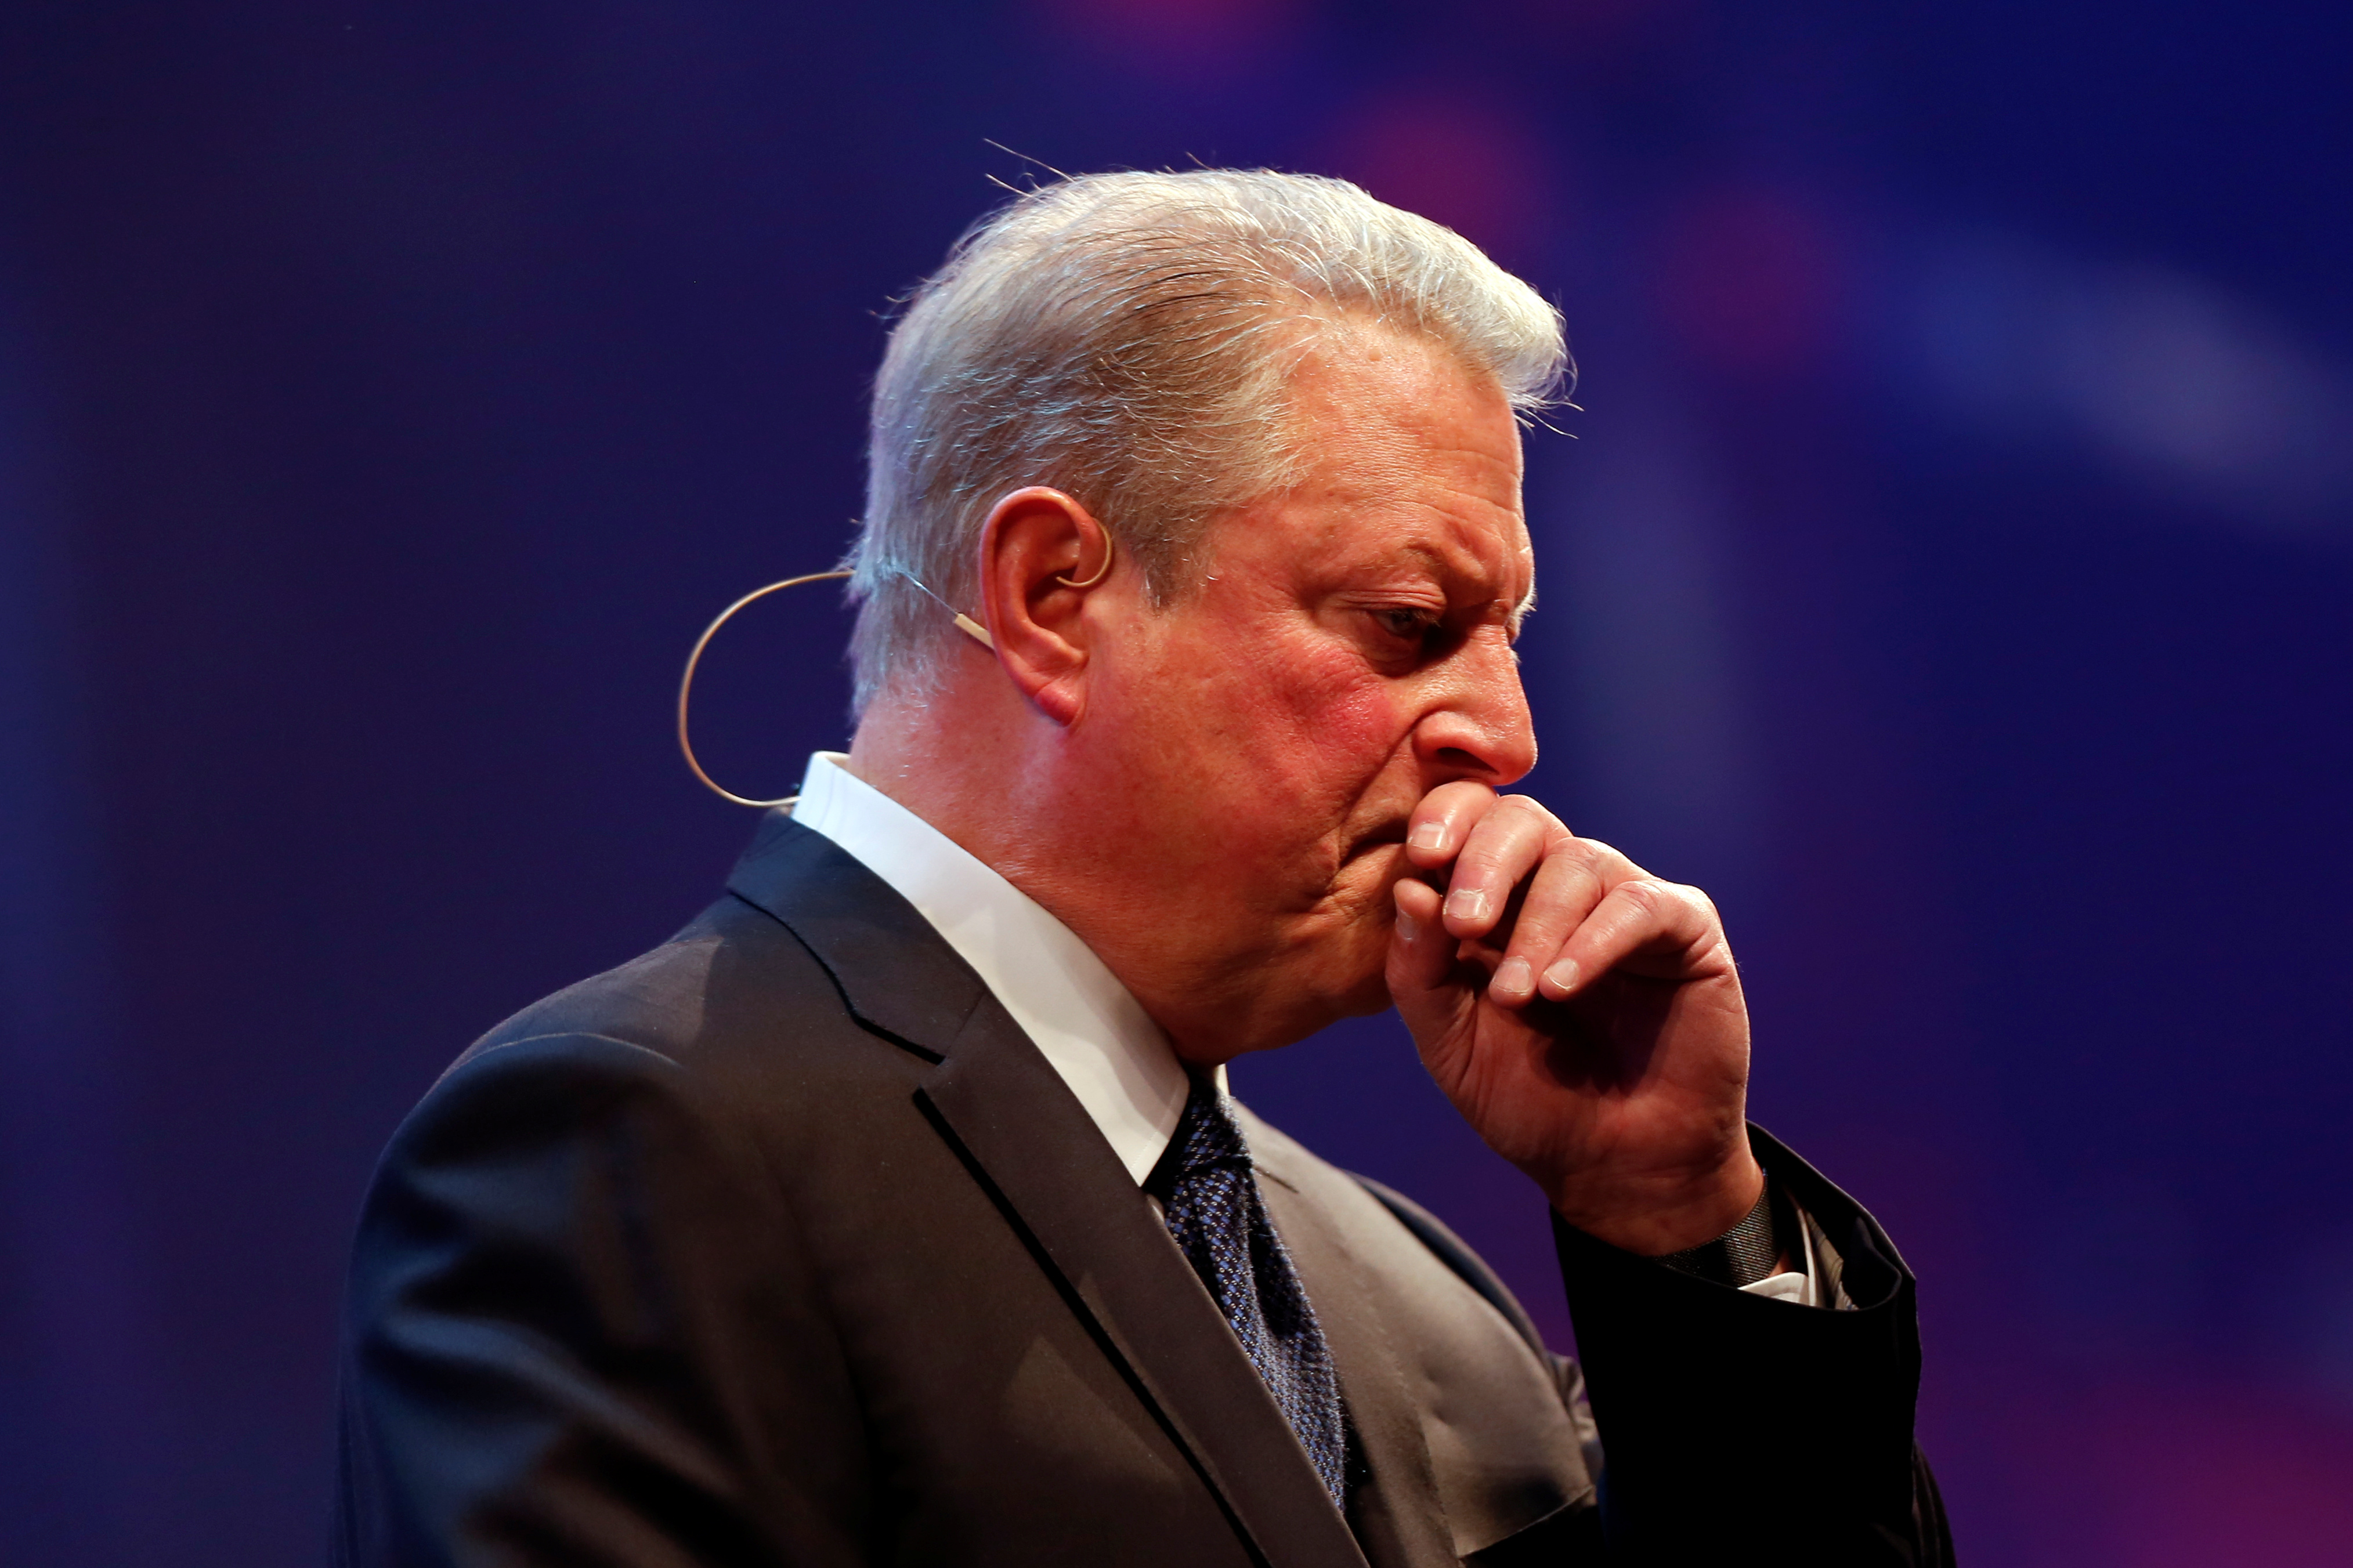 Al Gore chairman of Generation Investment Management gestures during the Web Summit, Europe's biggest tech conference, in Lisbon